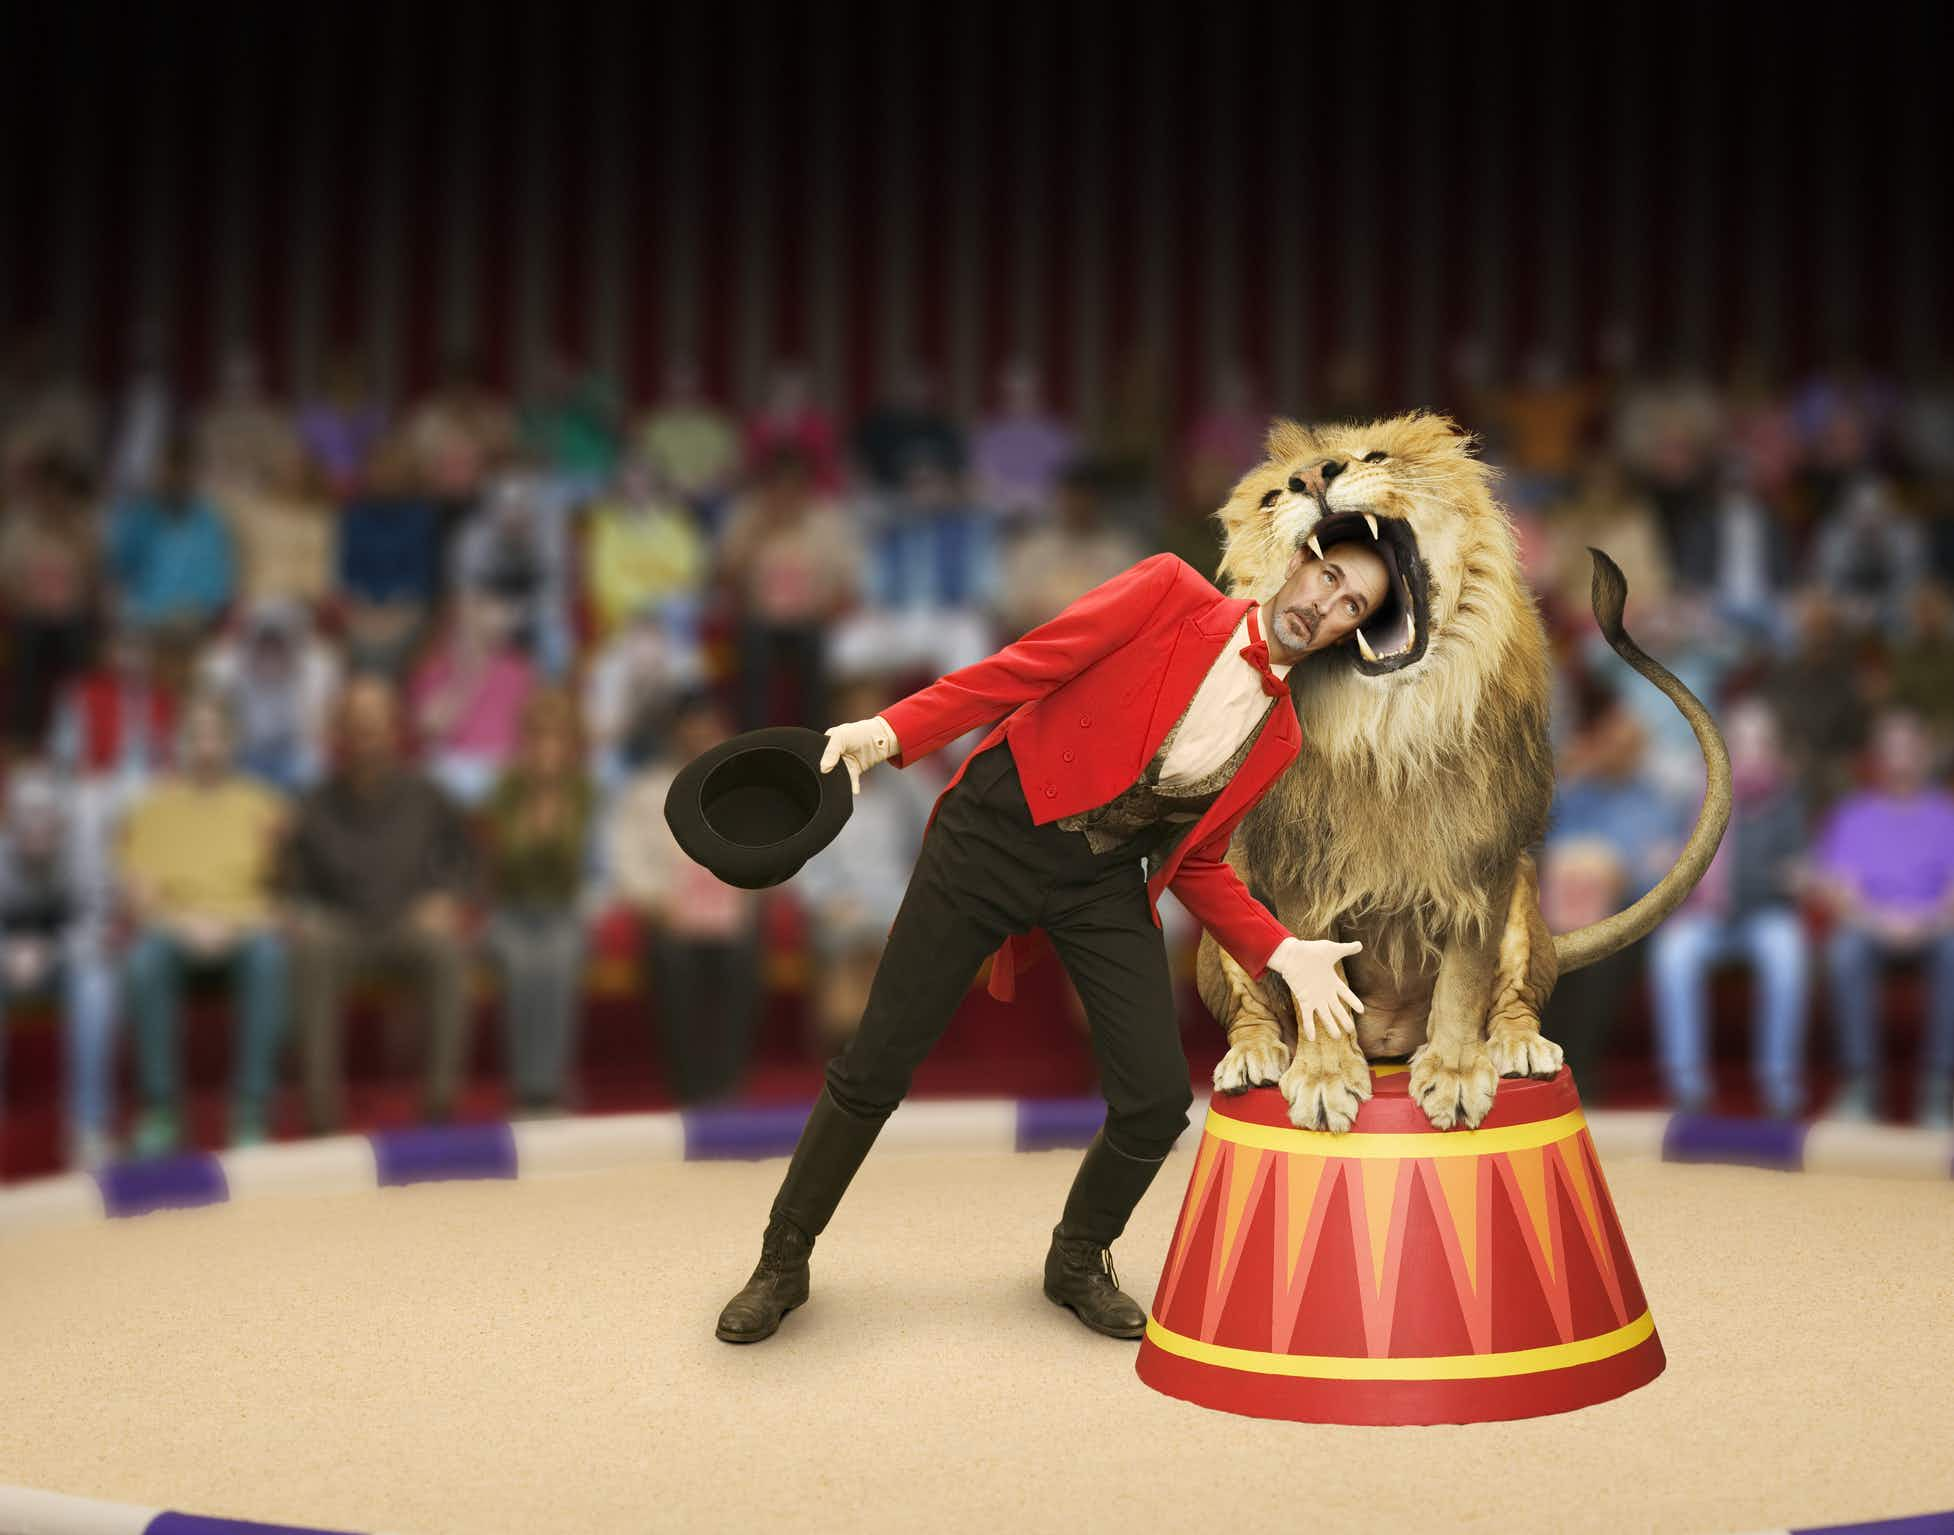 Slovakia to protect endangered species with a ban on wild animals in circuses from 2018